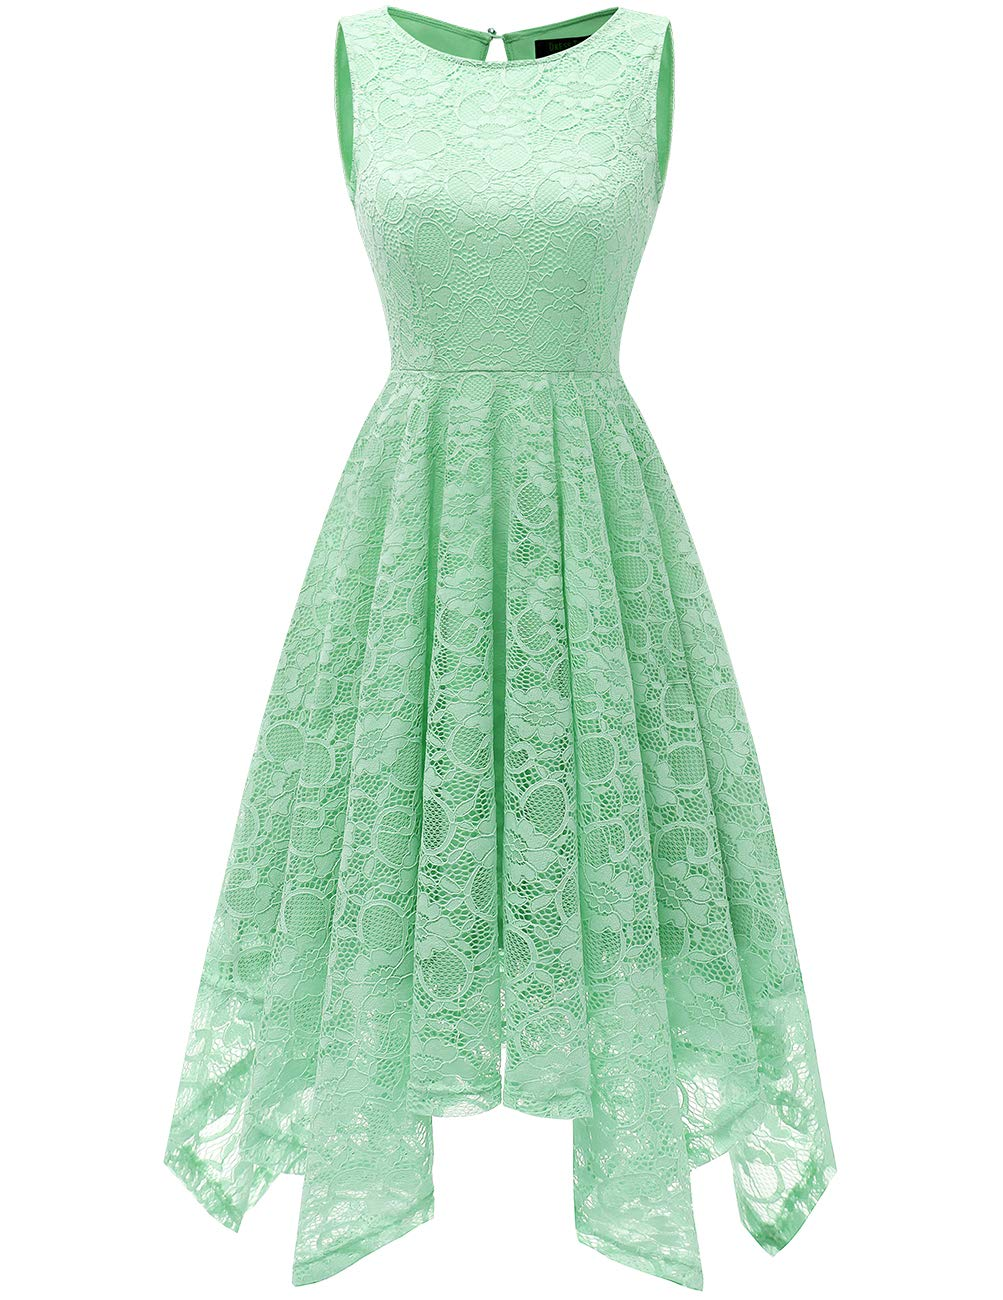 DRESSTELLS Women's Cocktail Vintage Floral Lace Handkerchief Hem Asymmetrical Party Dress Mint 3XL